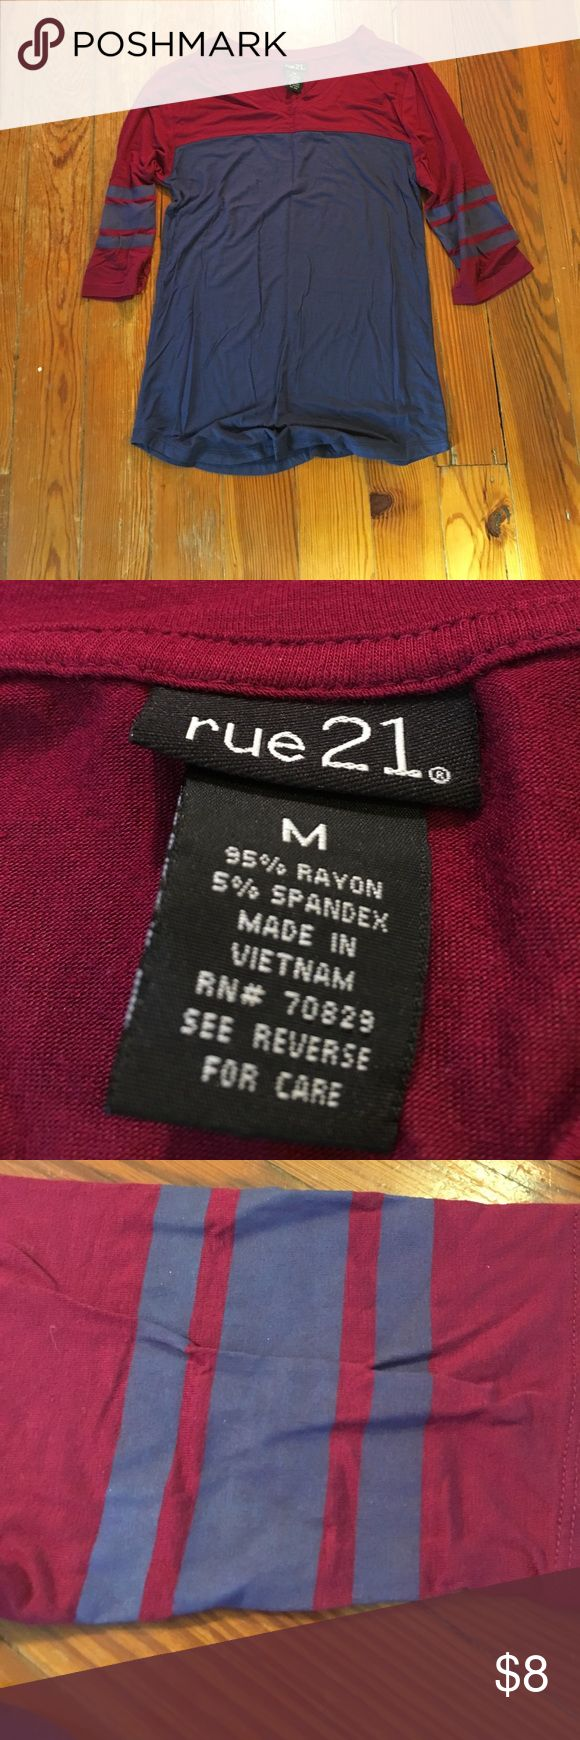 Rue 21 Half sleeve shirt Maroon and navy blue Rue 21 Half sleeve shirt. Features navy blue stripes on maroon sleeves. Super comfy and soft! Size medium but fits like a small. Bundle and save 10%. Comment if you have questions! Rue 21 Tops Tees - Short Sleeve